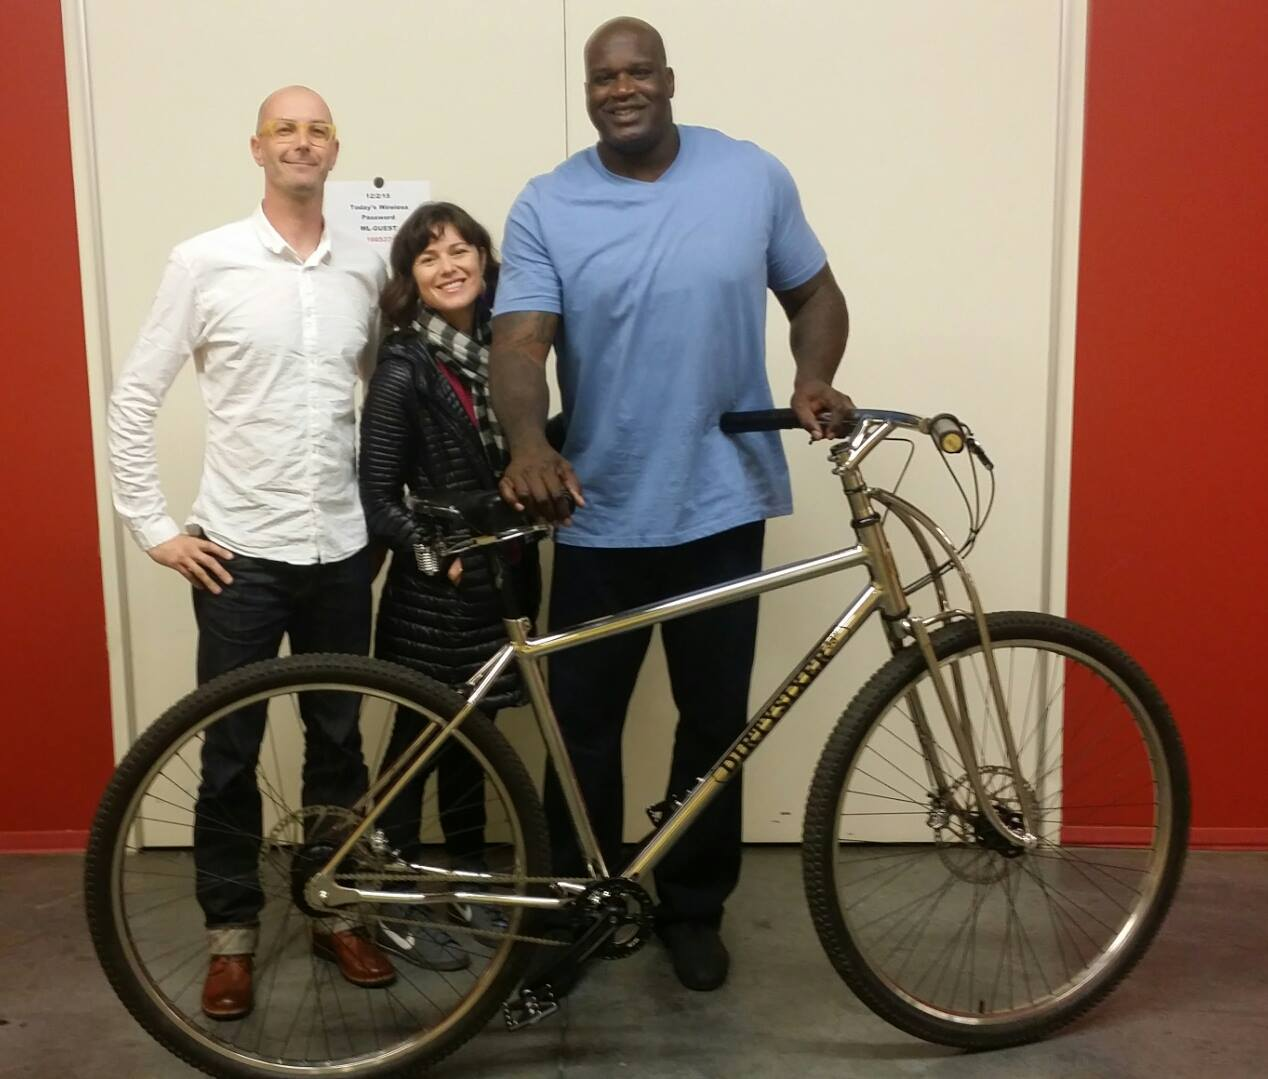 Shaquille O'Neal Gets a DirtyDirty 36er bike for tall people